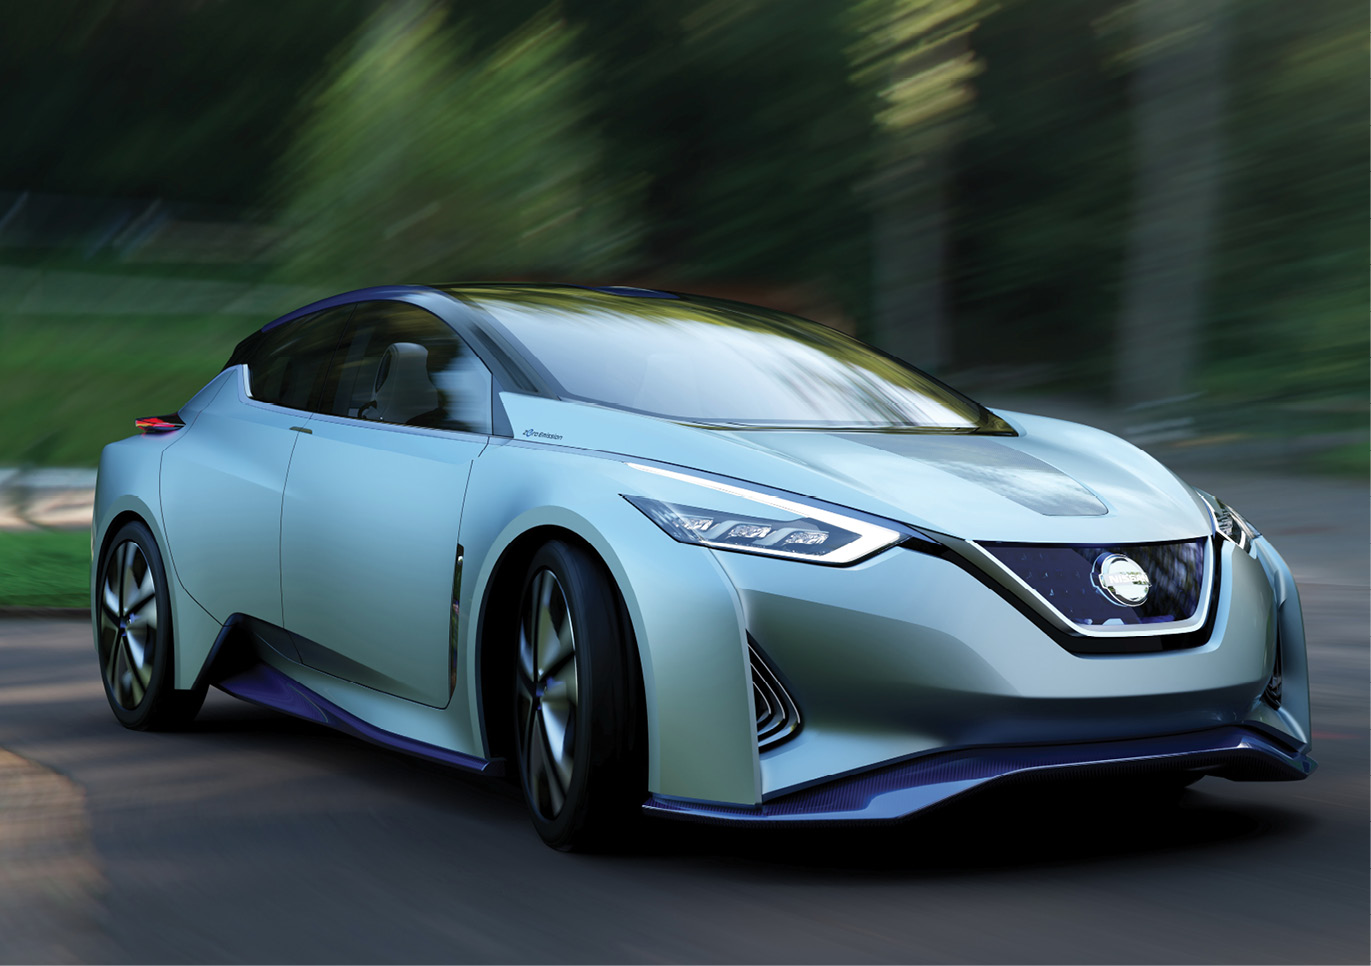 Nissan is integrating advanced vehicle control & safety technologies with AI to develop practical, real-world applications of autonomous drive technology.